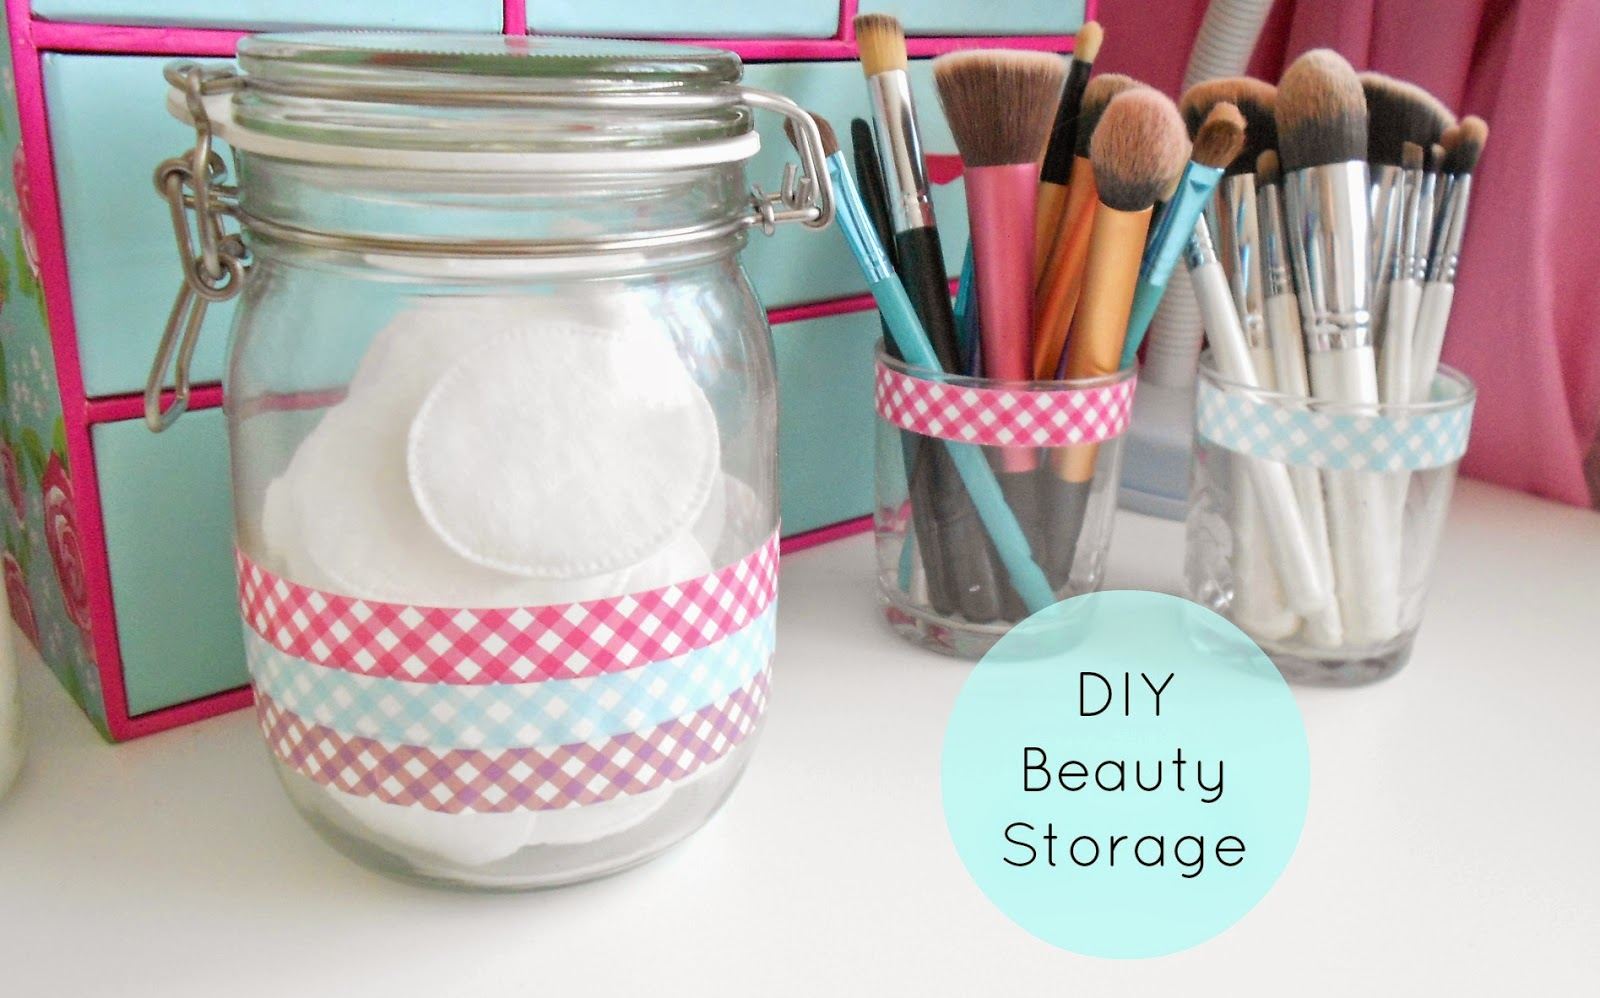 diy brush holders kilner jar beauty storage